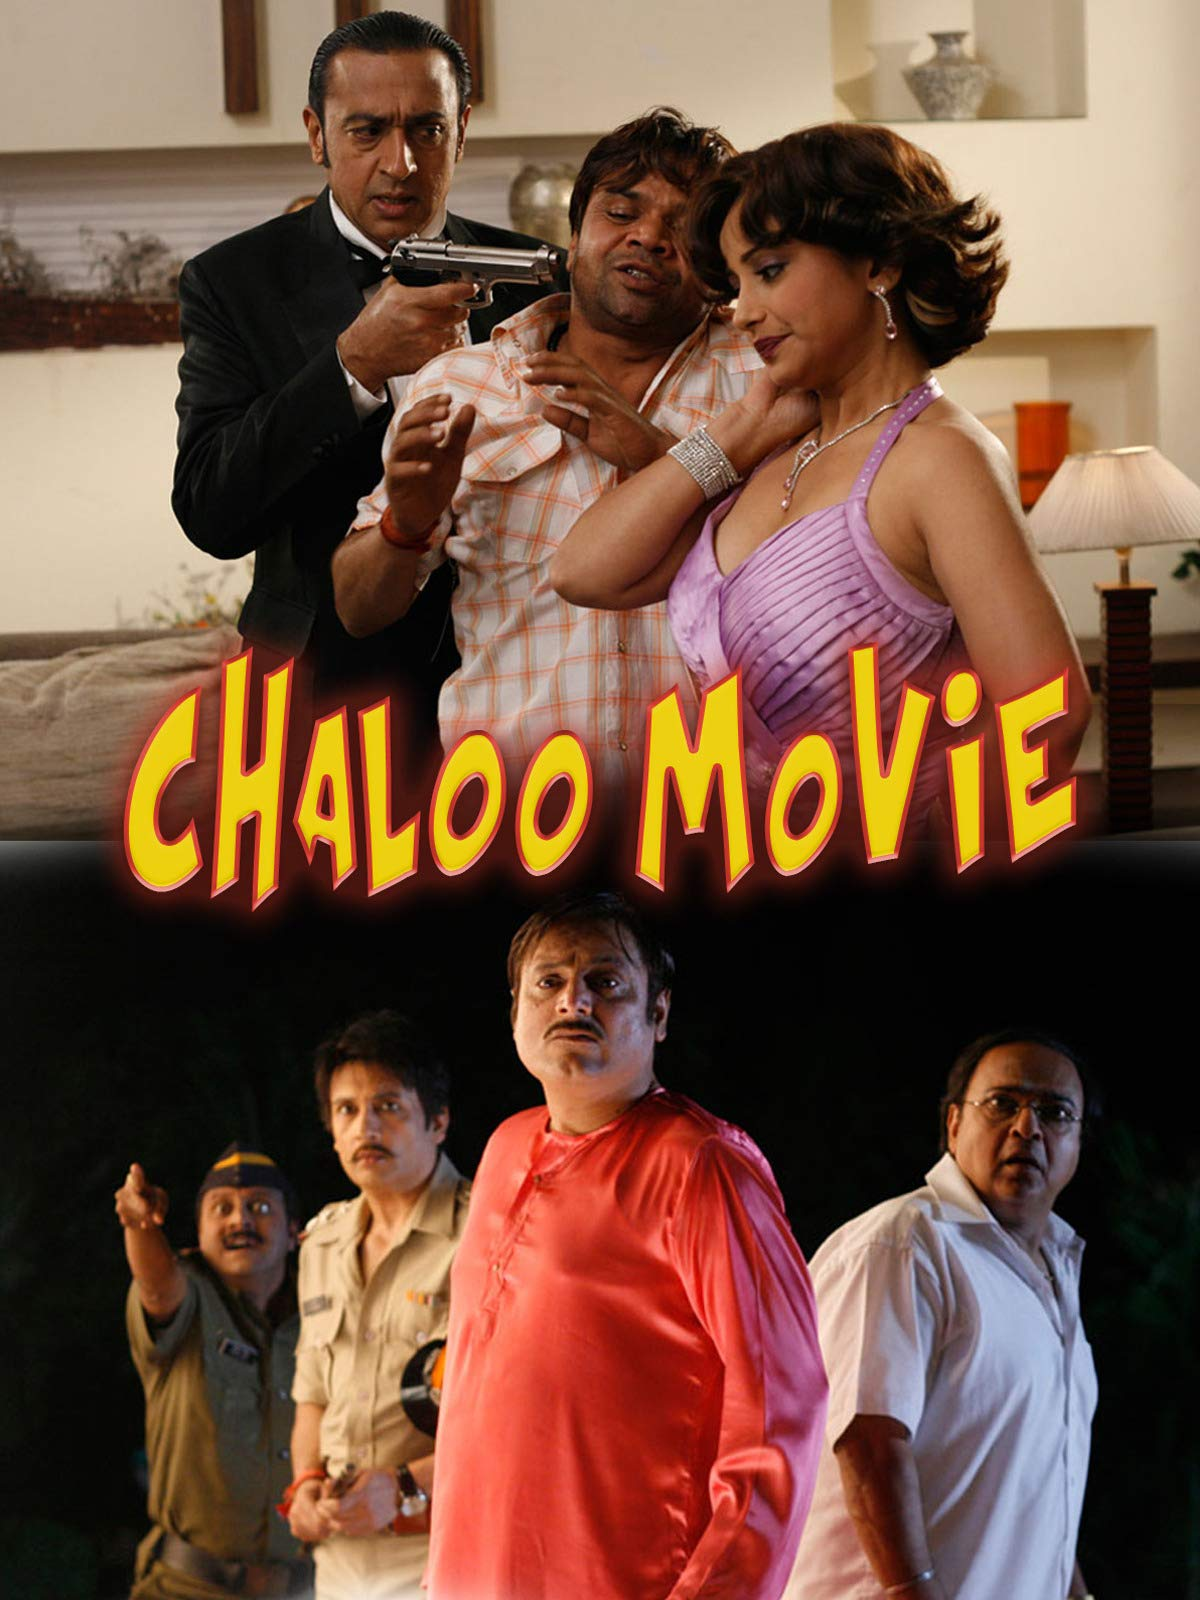 Chaloo Movie